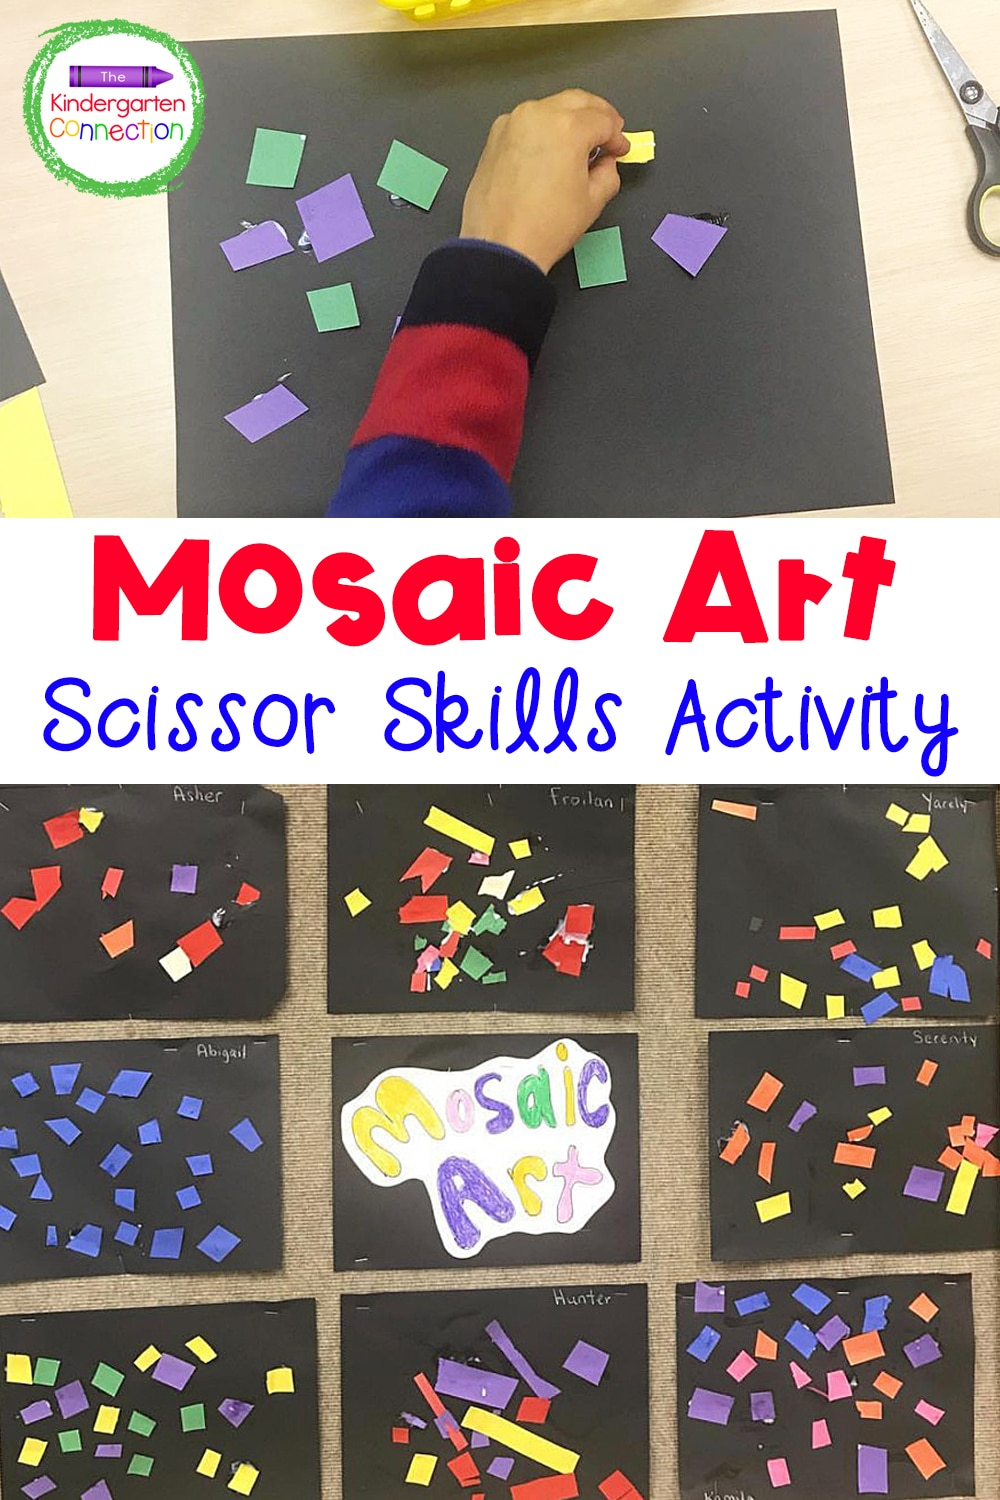 This simple and fun mosaic art scissor skills activity will have your students practicing cutting skills while also making beautiful art!